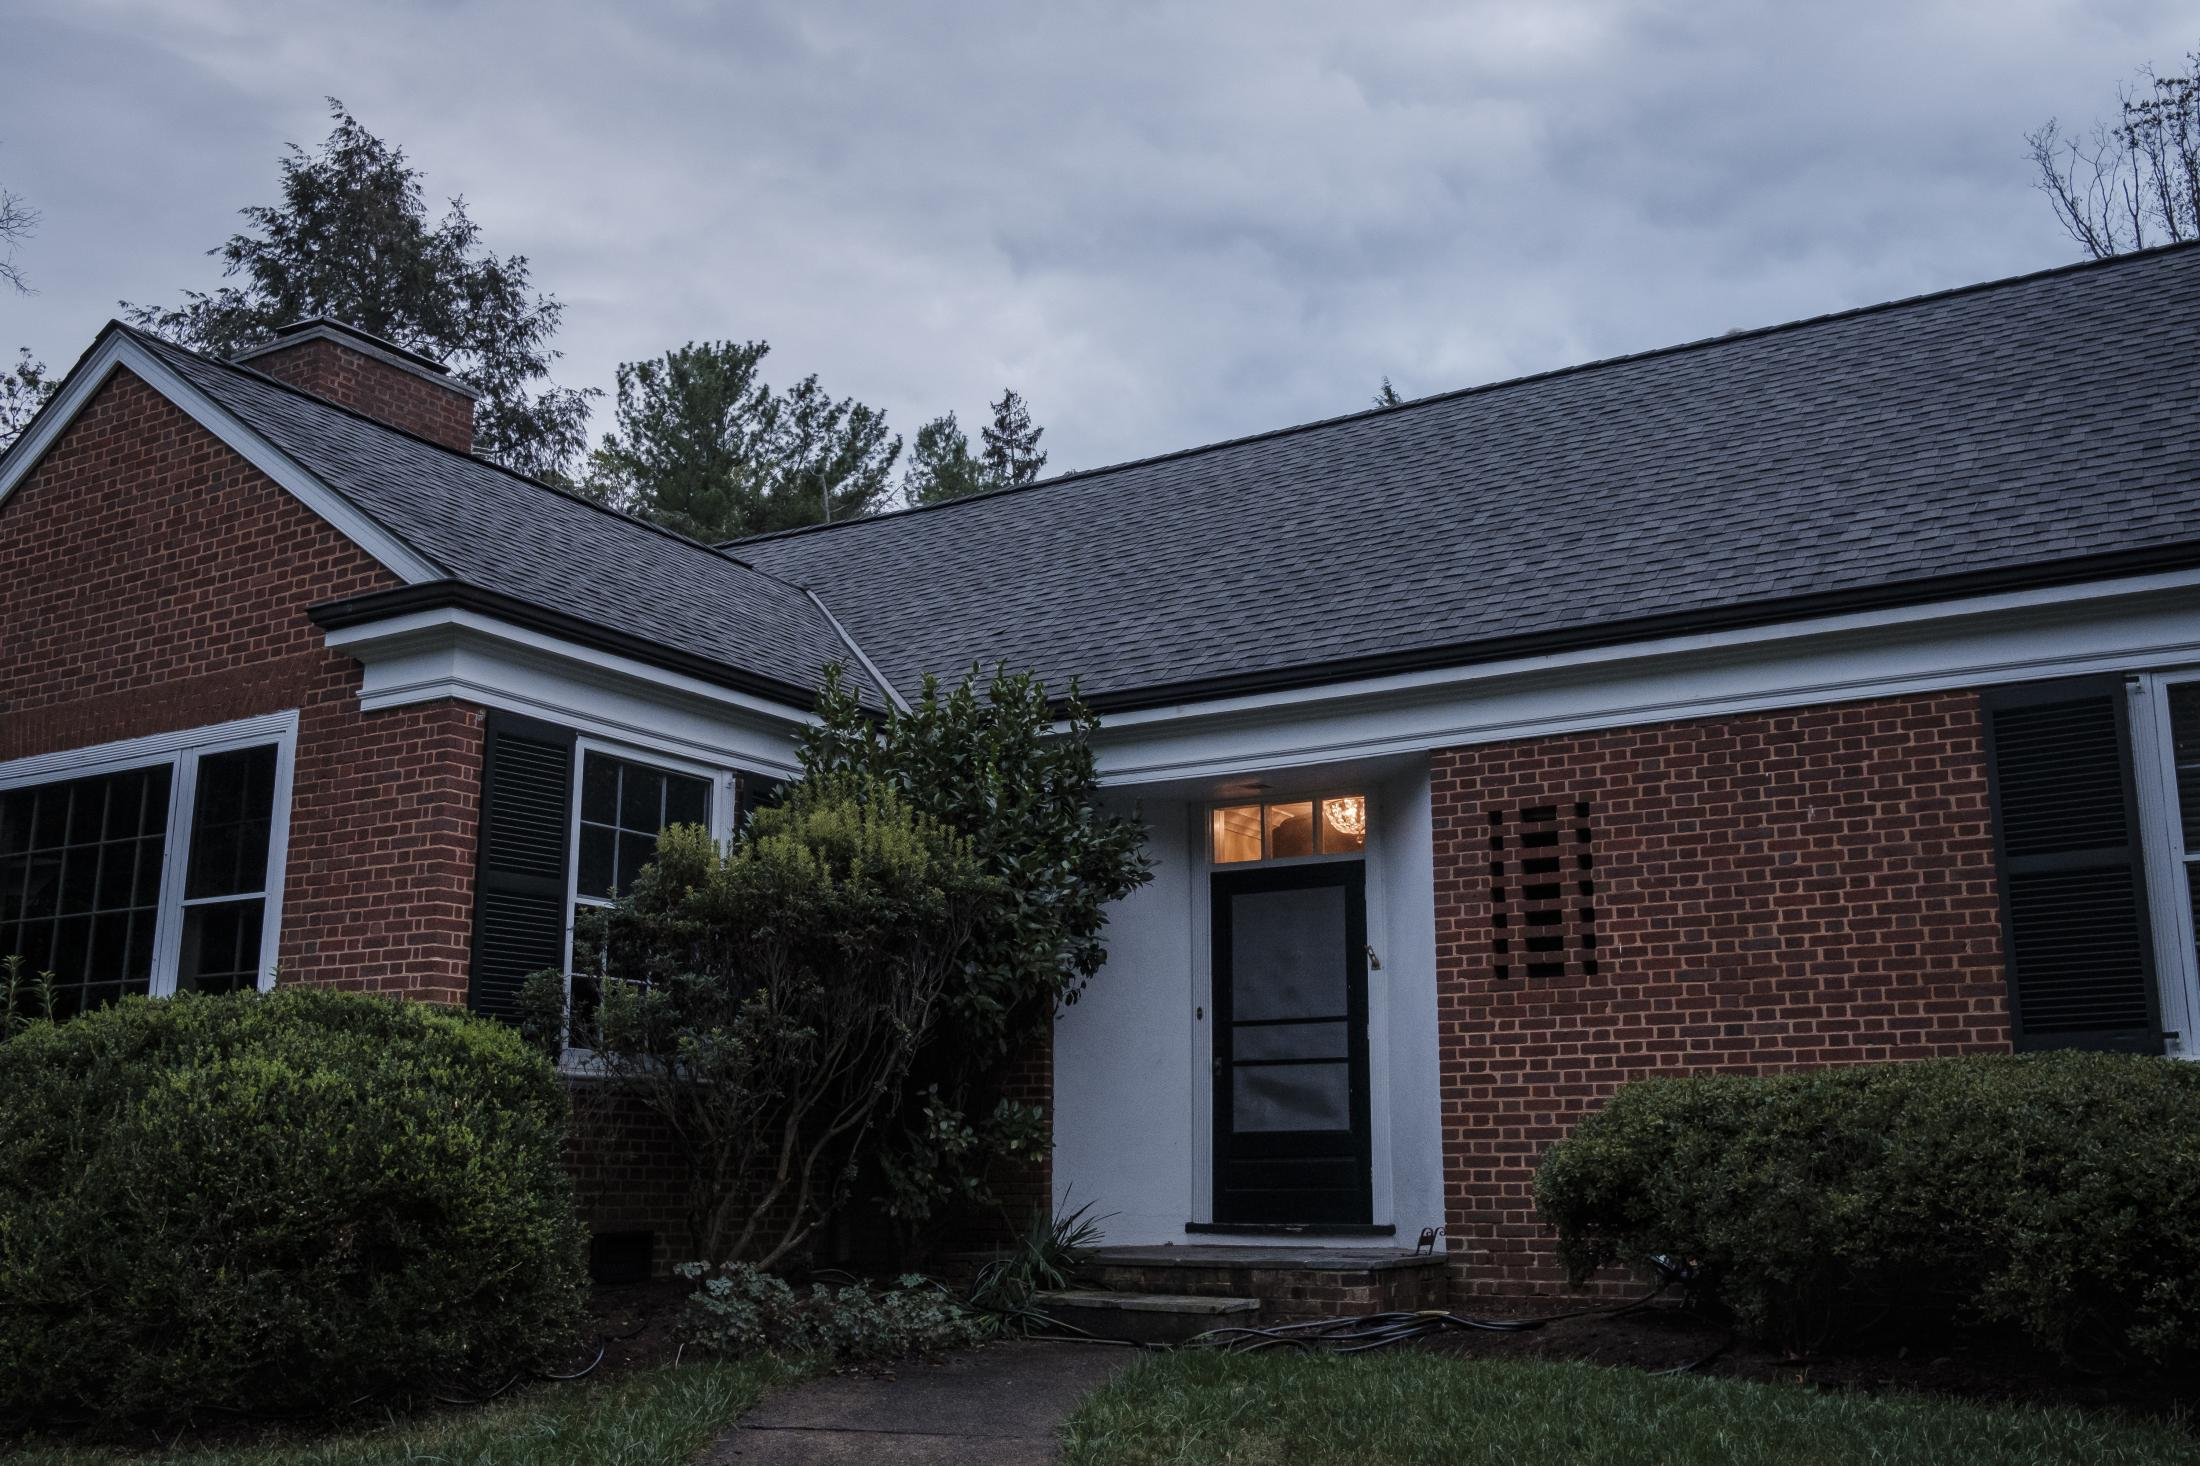 Seidman's house at Rugby Hills in Charlottesville, Virginia, U.S., on Monday Sept. 23, 2019. Hannah Seidman is a patient in a genetic risk study about type 1 diabetes at University of Virginia. Photographer: Carlos Bernate/ NPR